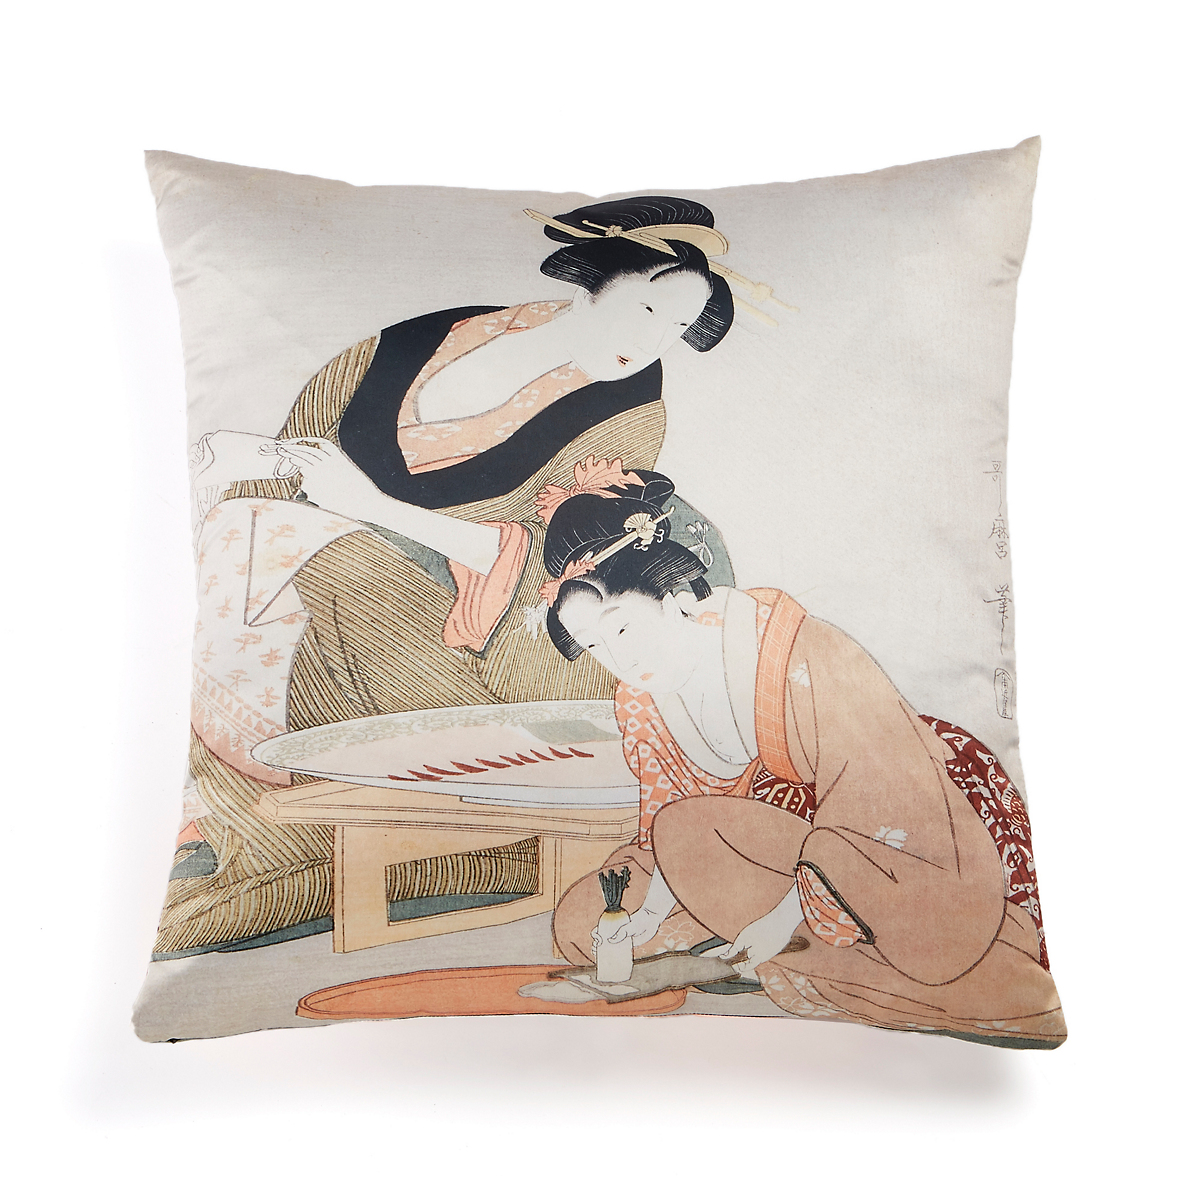 Edo Period 'Geishas In Peach Robes' Pillow